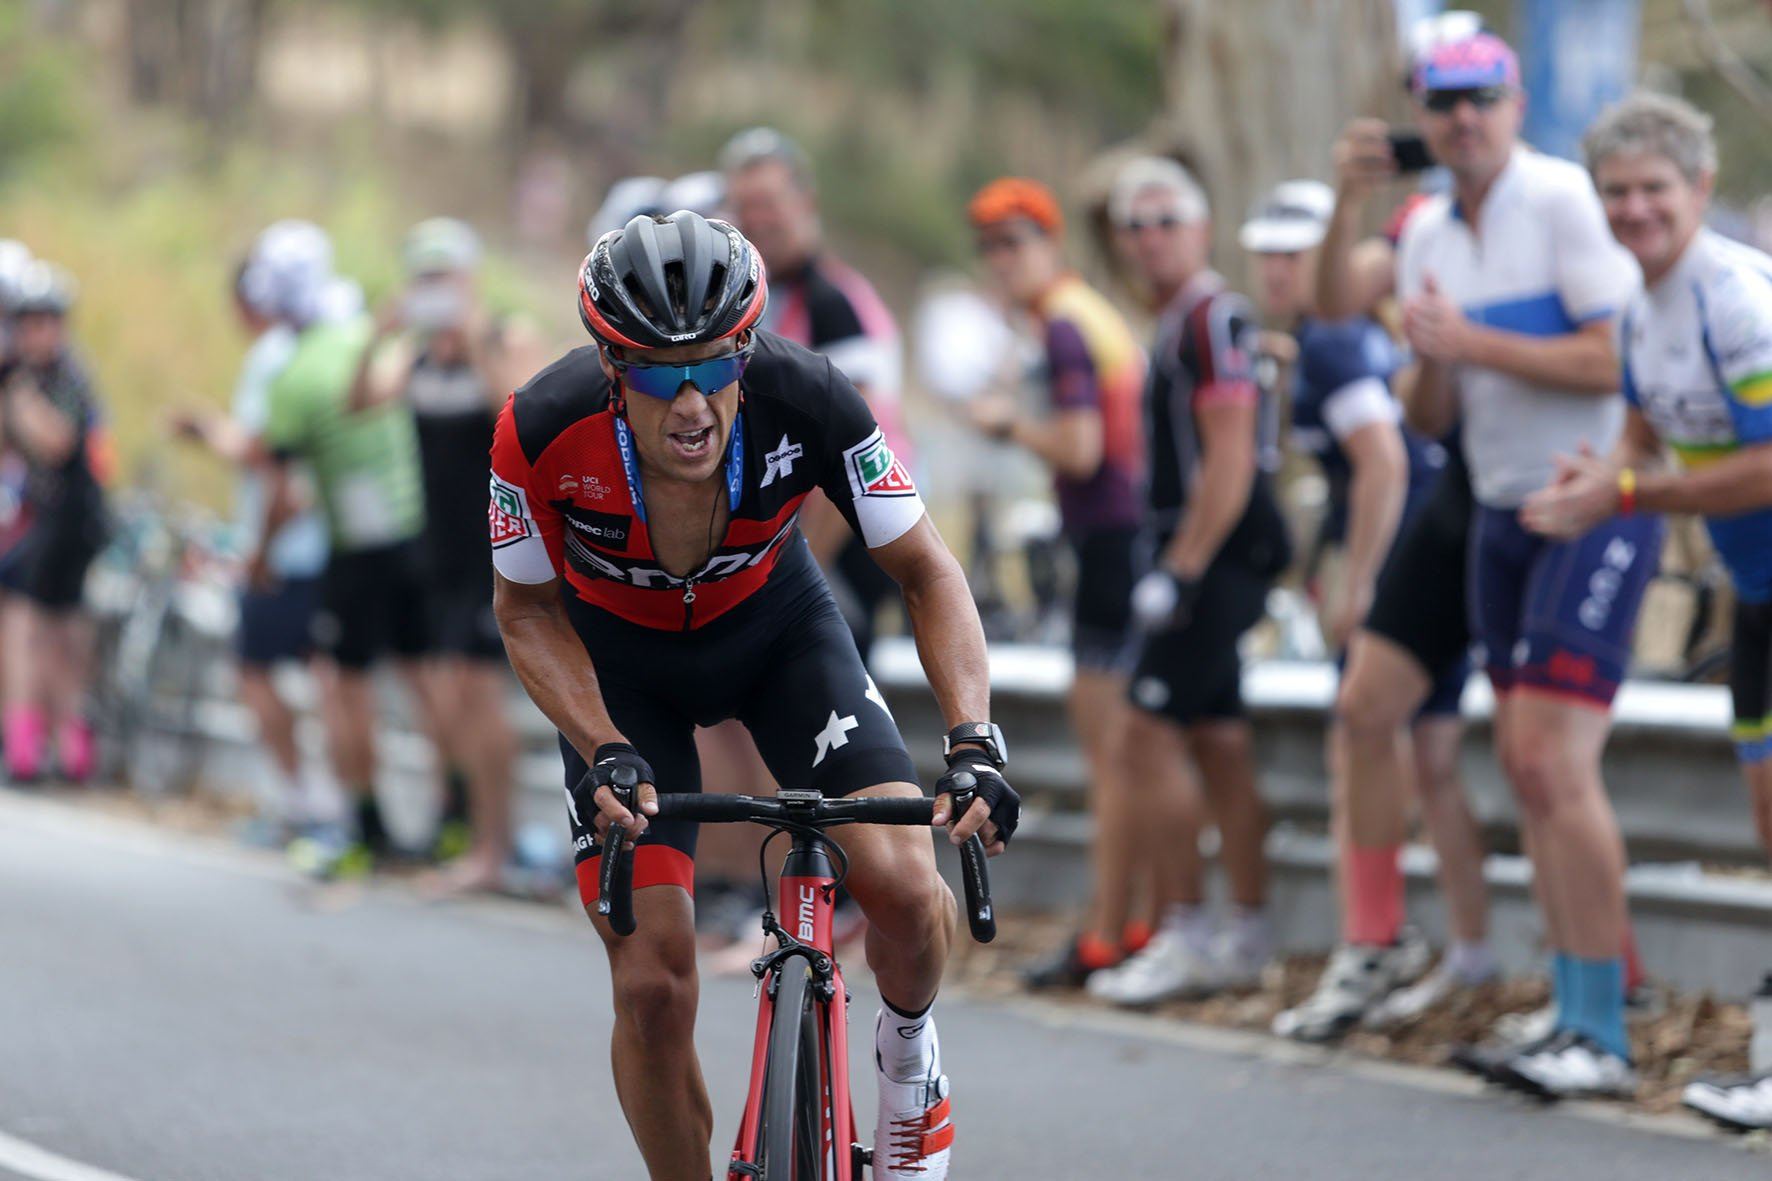 He confirms his status of King of Willunga Hill. @richie_porte climbed his way to a fifth consecutive victory atop Willunga Hull at the @tourdownunder today and now sits second overall. #TDU #AussieCycling @Ausport @AUSOlympicTeam @CommGamesAUS @GC2018 Photos: John Veage https://t.co/Gy6rKlnn1u